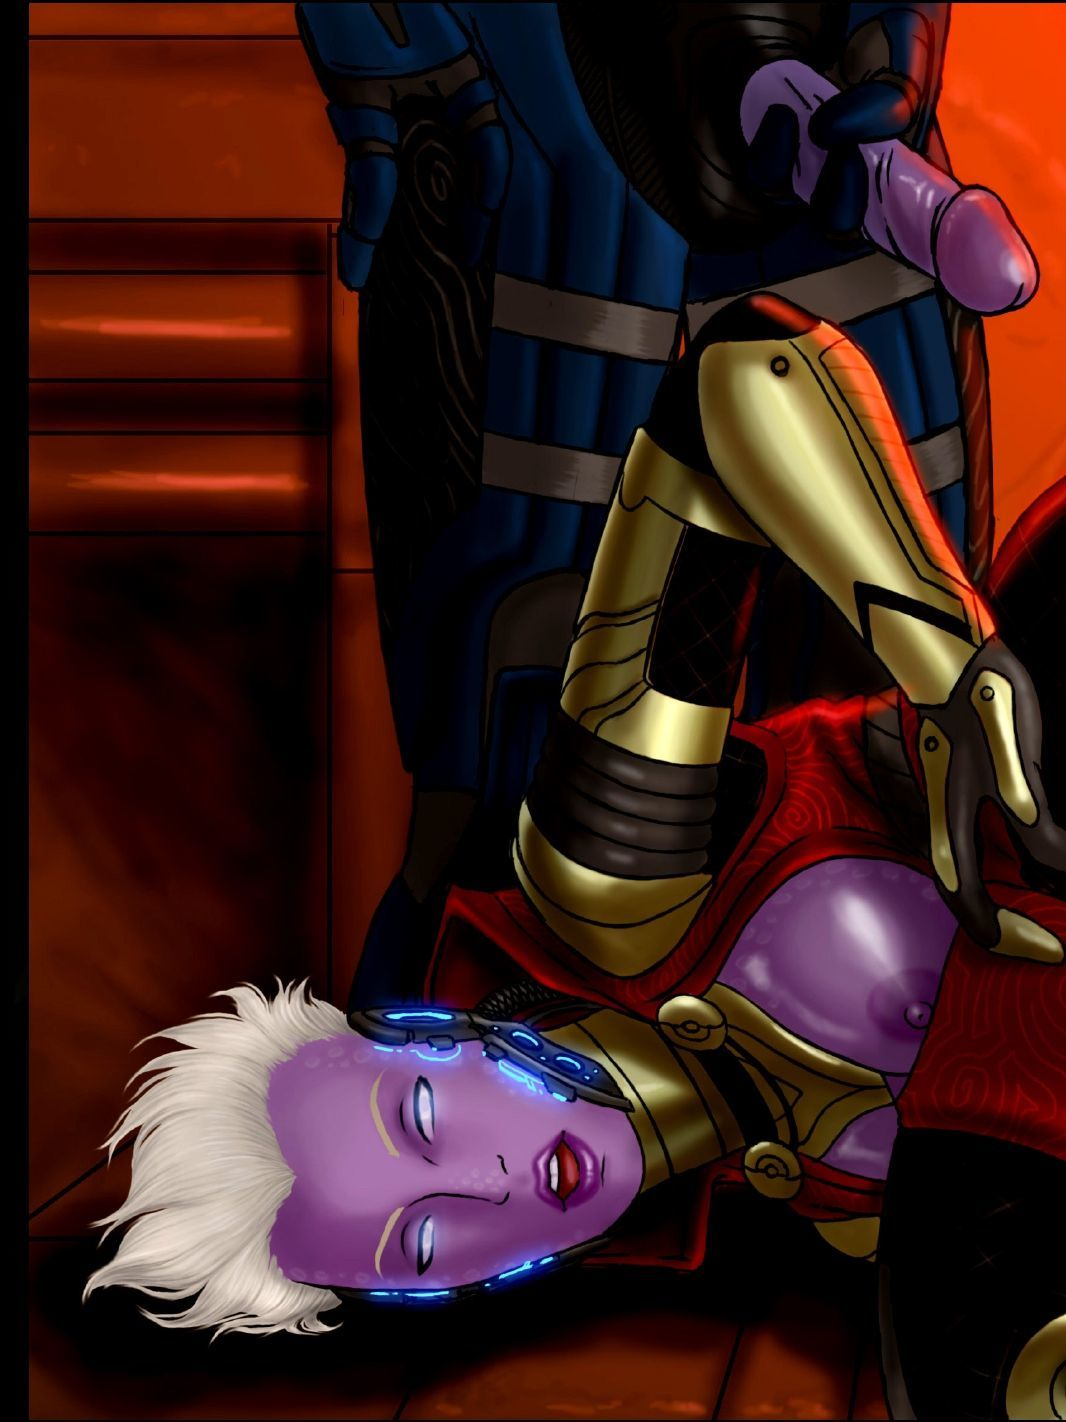 FORNAX_The_galaxys_finest_xenophilia_(Mass_Effect) comix_58074.jpg